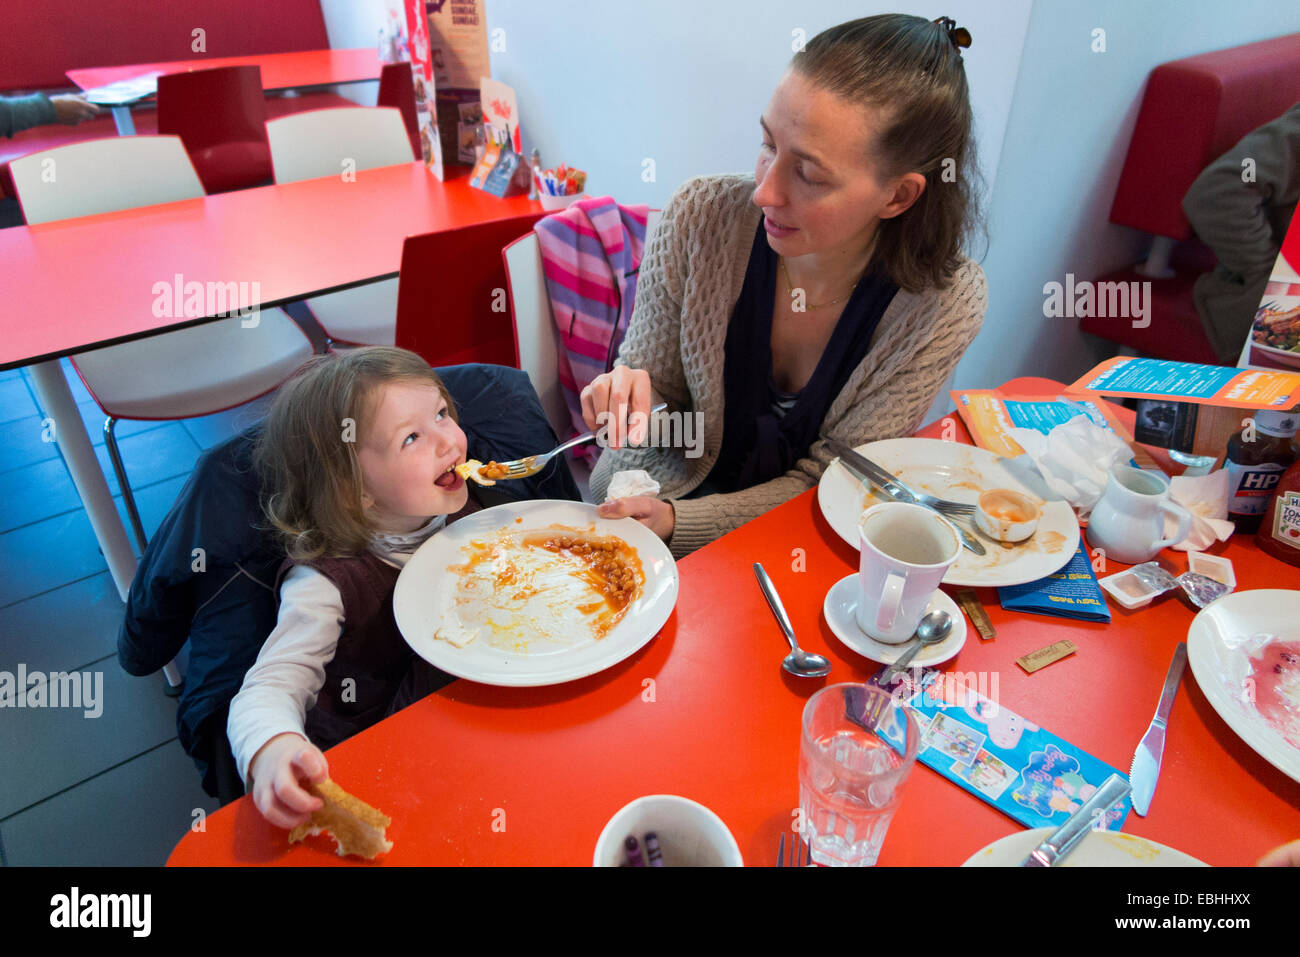 People Inside American Diner Style Restaurant Stock Photos